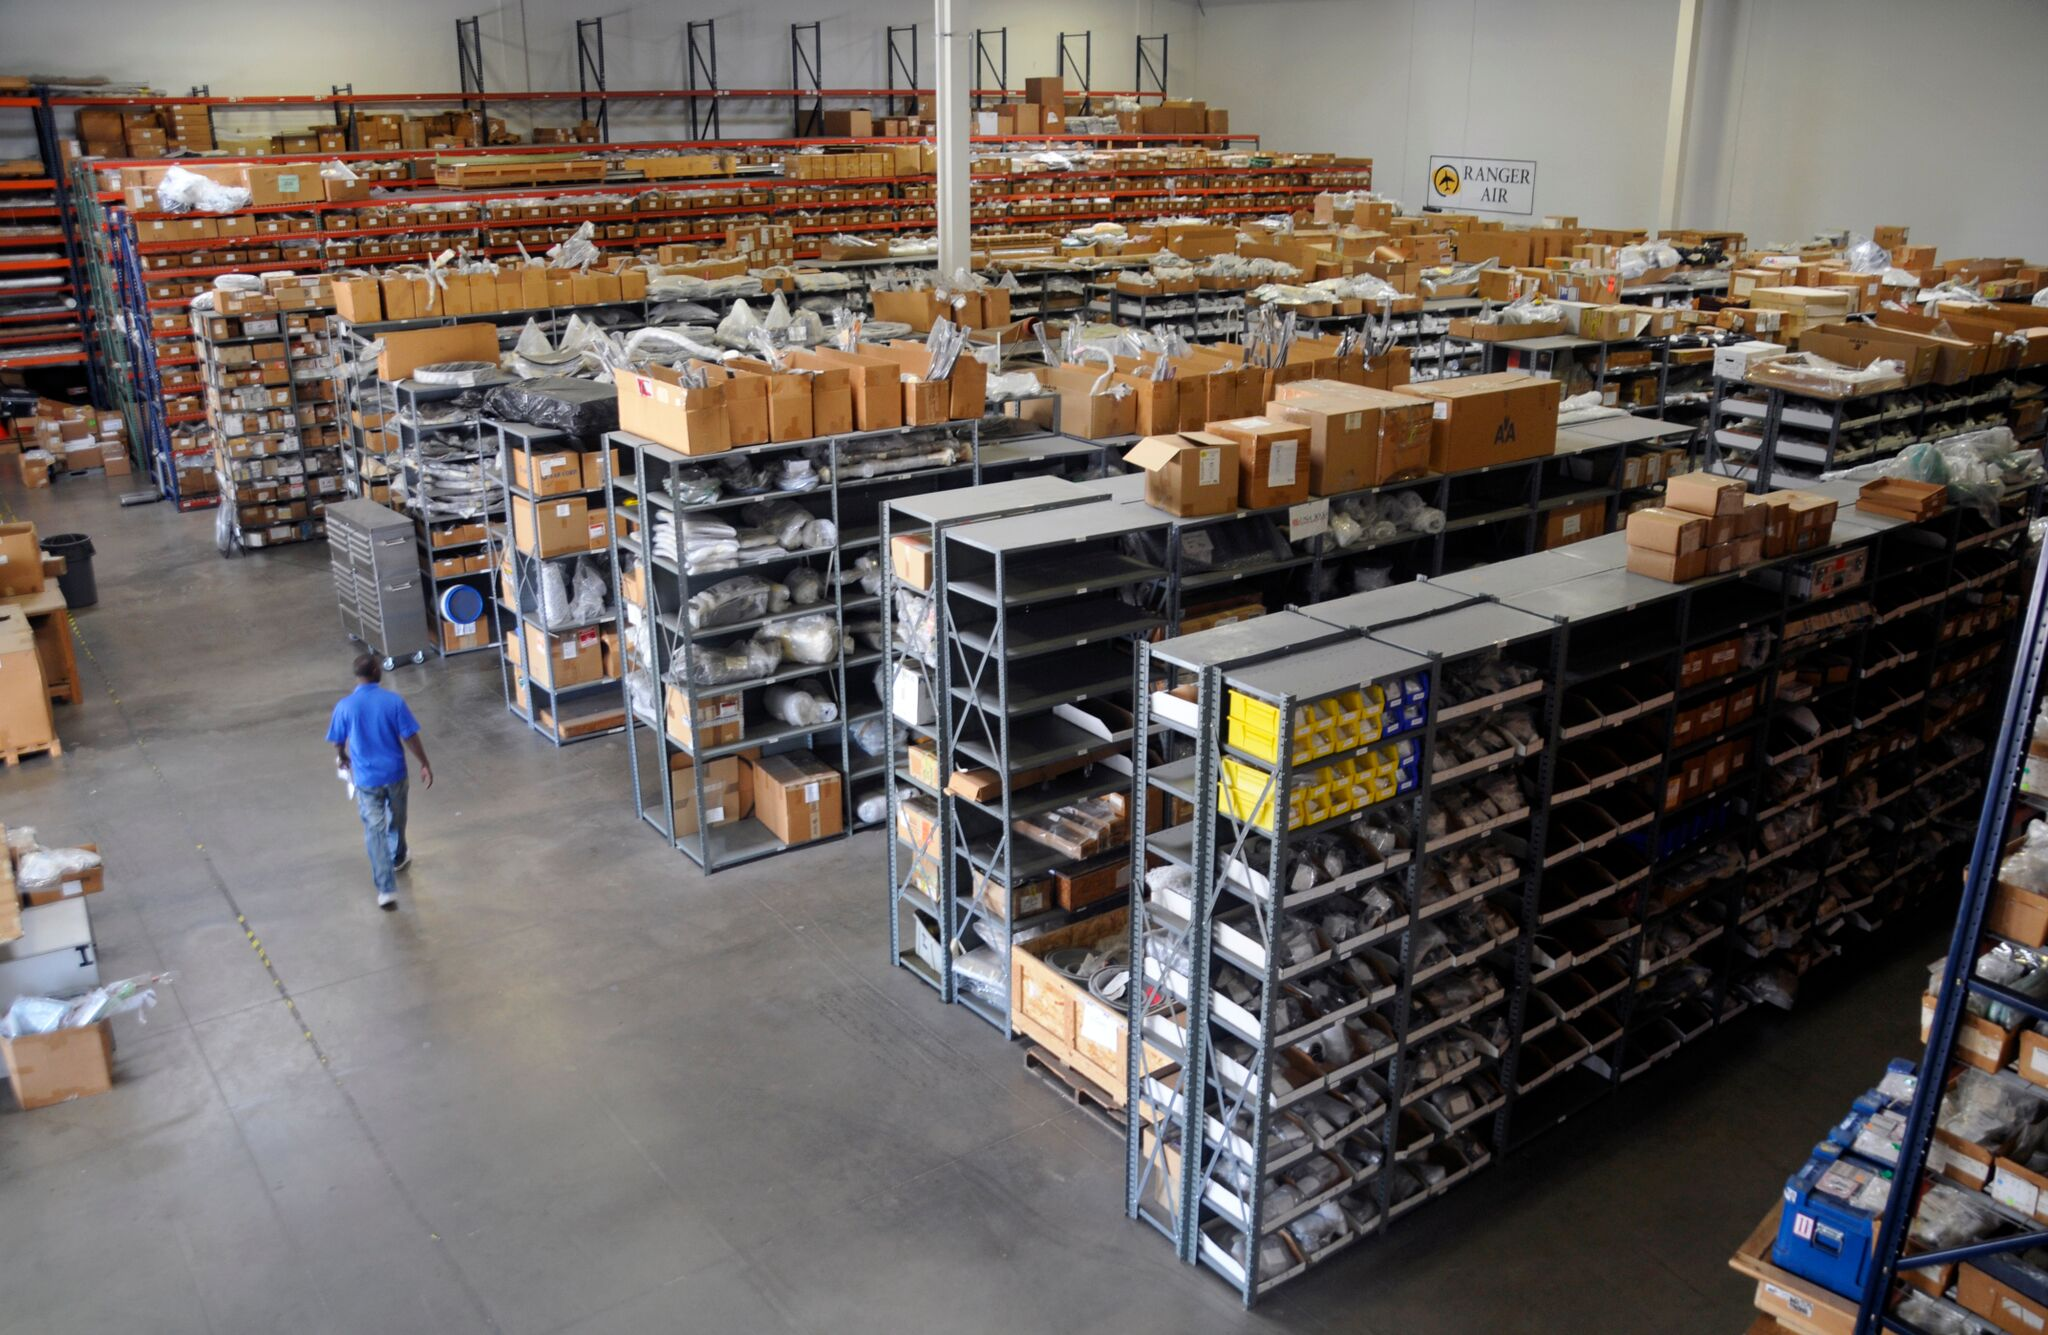 We stock and trade in virtually every commercial airframe and engine rotable in the world